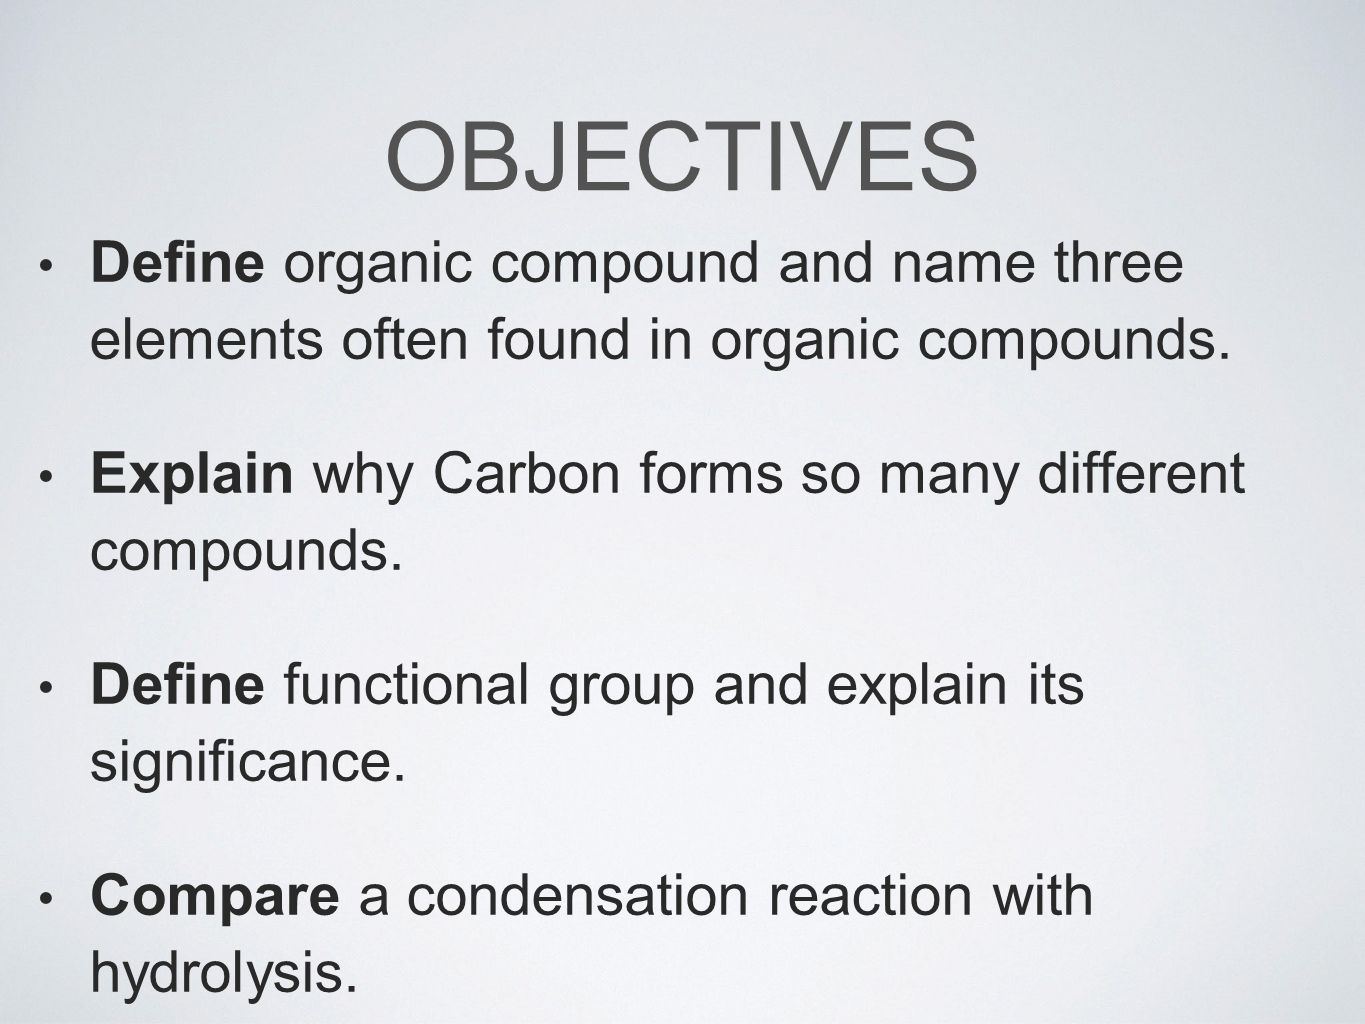 OBJECTIVES Define organic compound and name three elements often found in organic compounds.